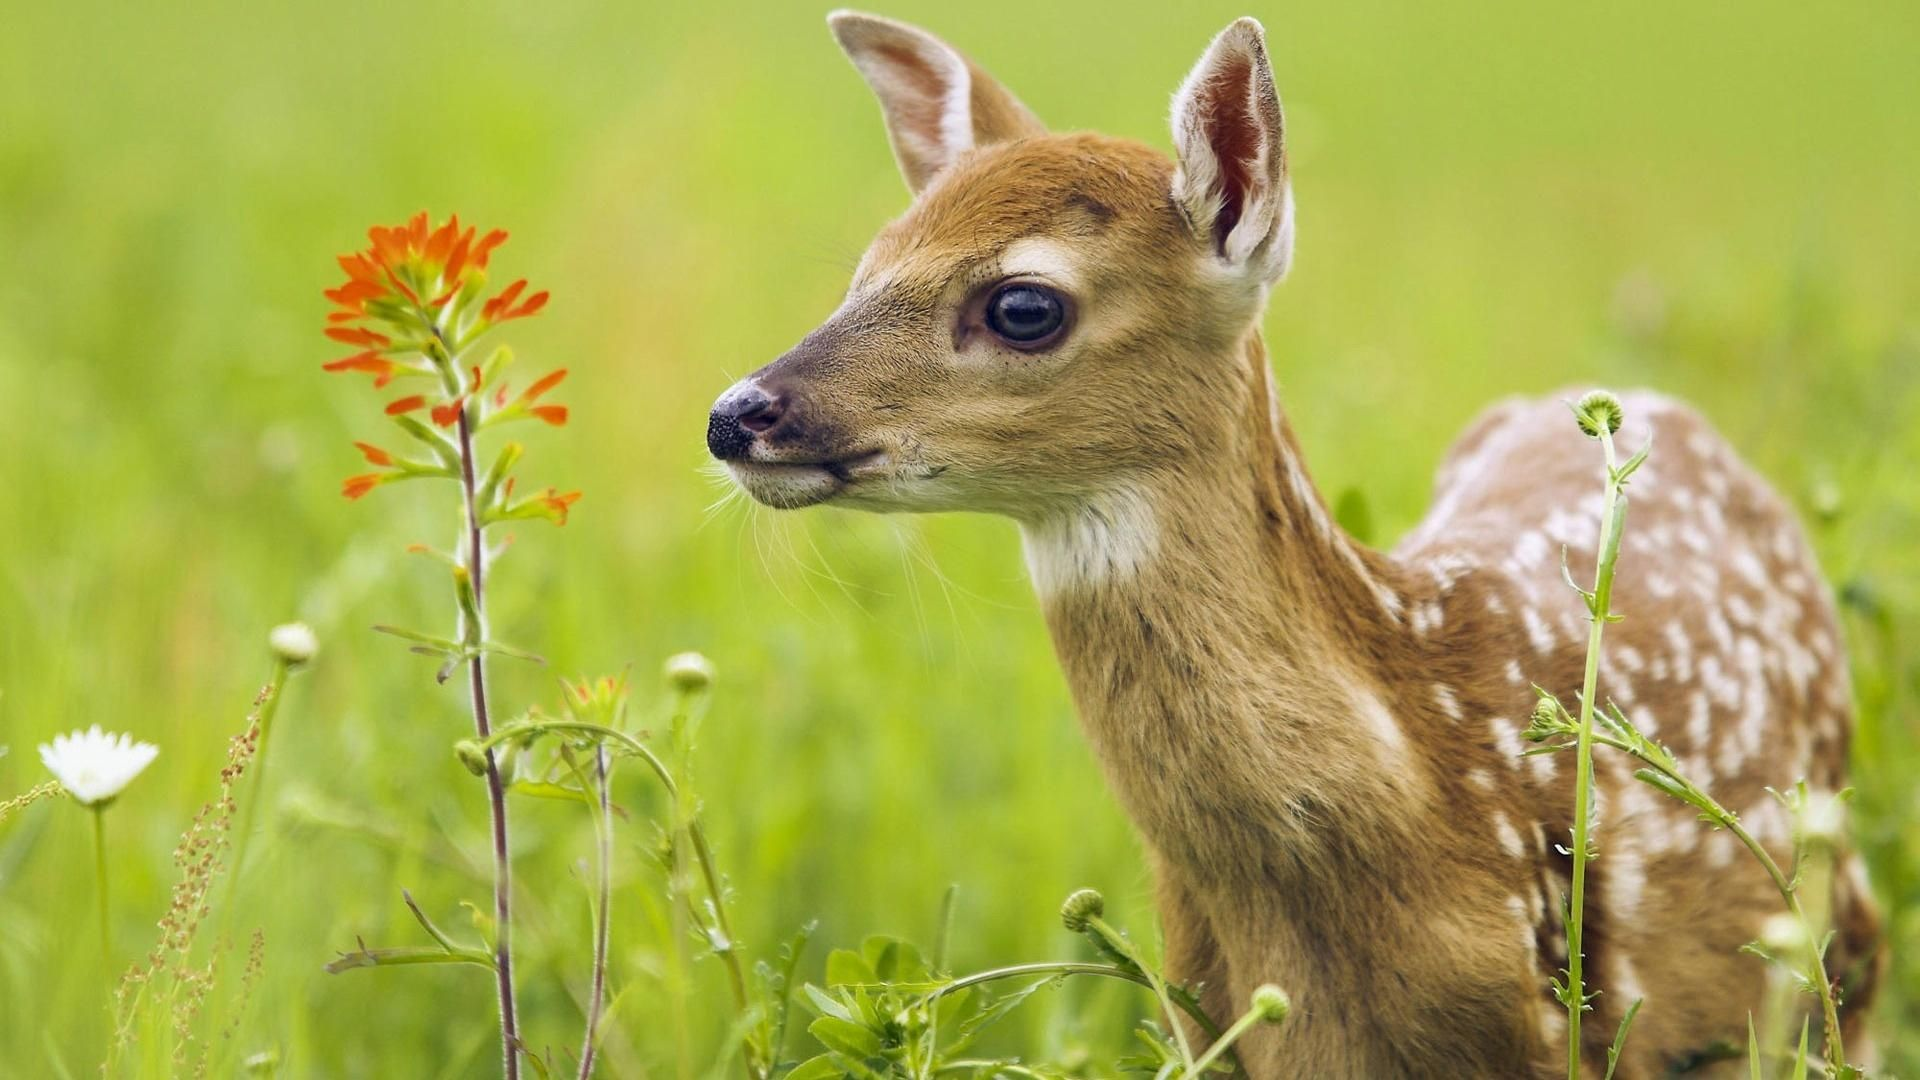 Baby Deer In The Field Jpg 1920 1080 Baby Animals Animals Beautiful Animal Pictures